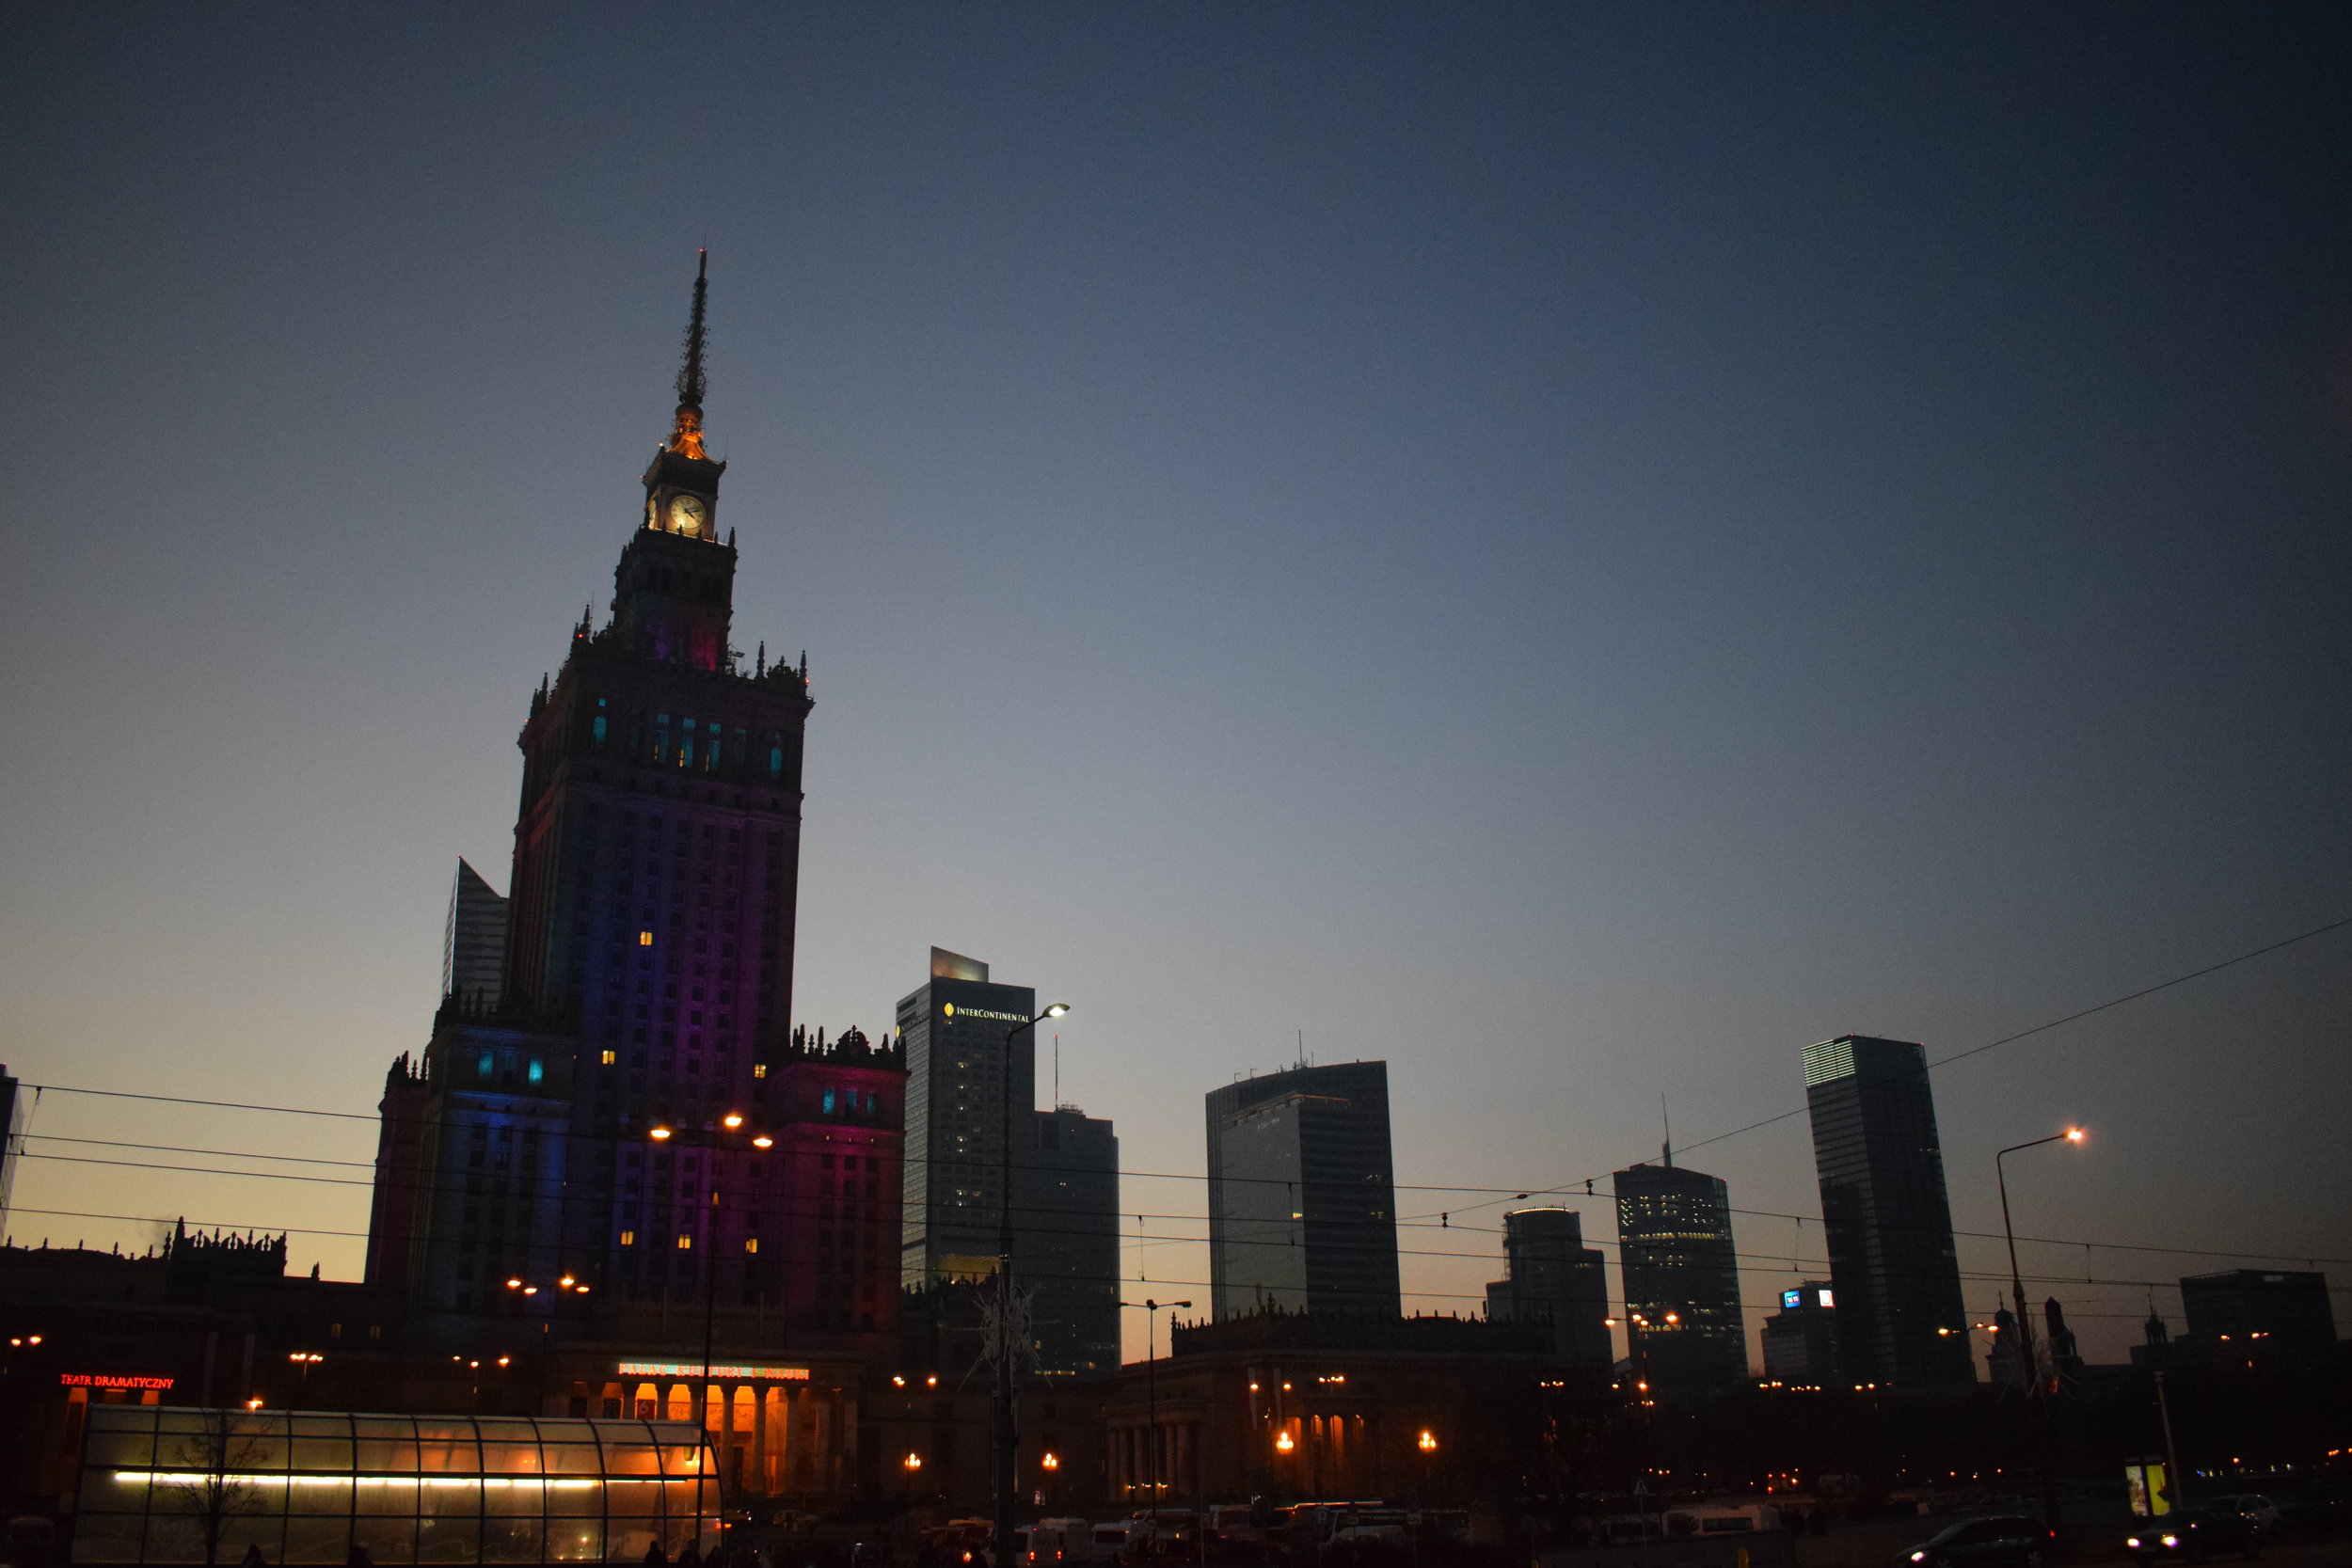 Warsaw's Palace of Culture and Science cut an impressive figure against the backdrop of a fading sunset.